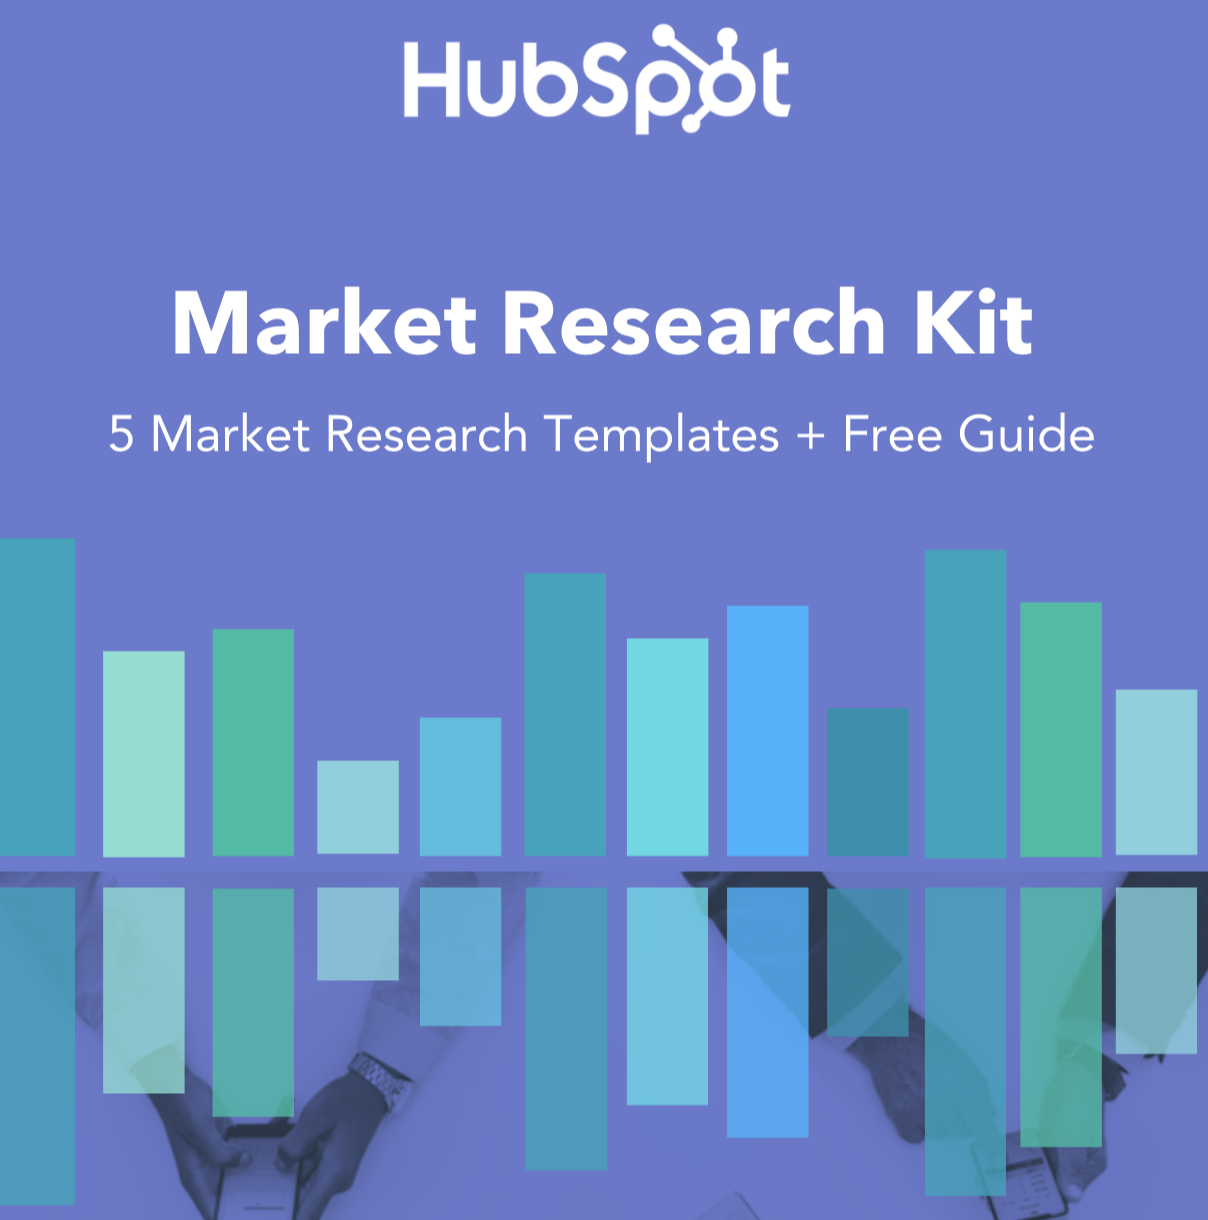 free, editable, and downloadable market research template